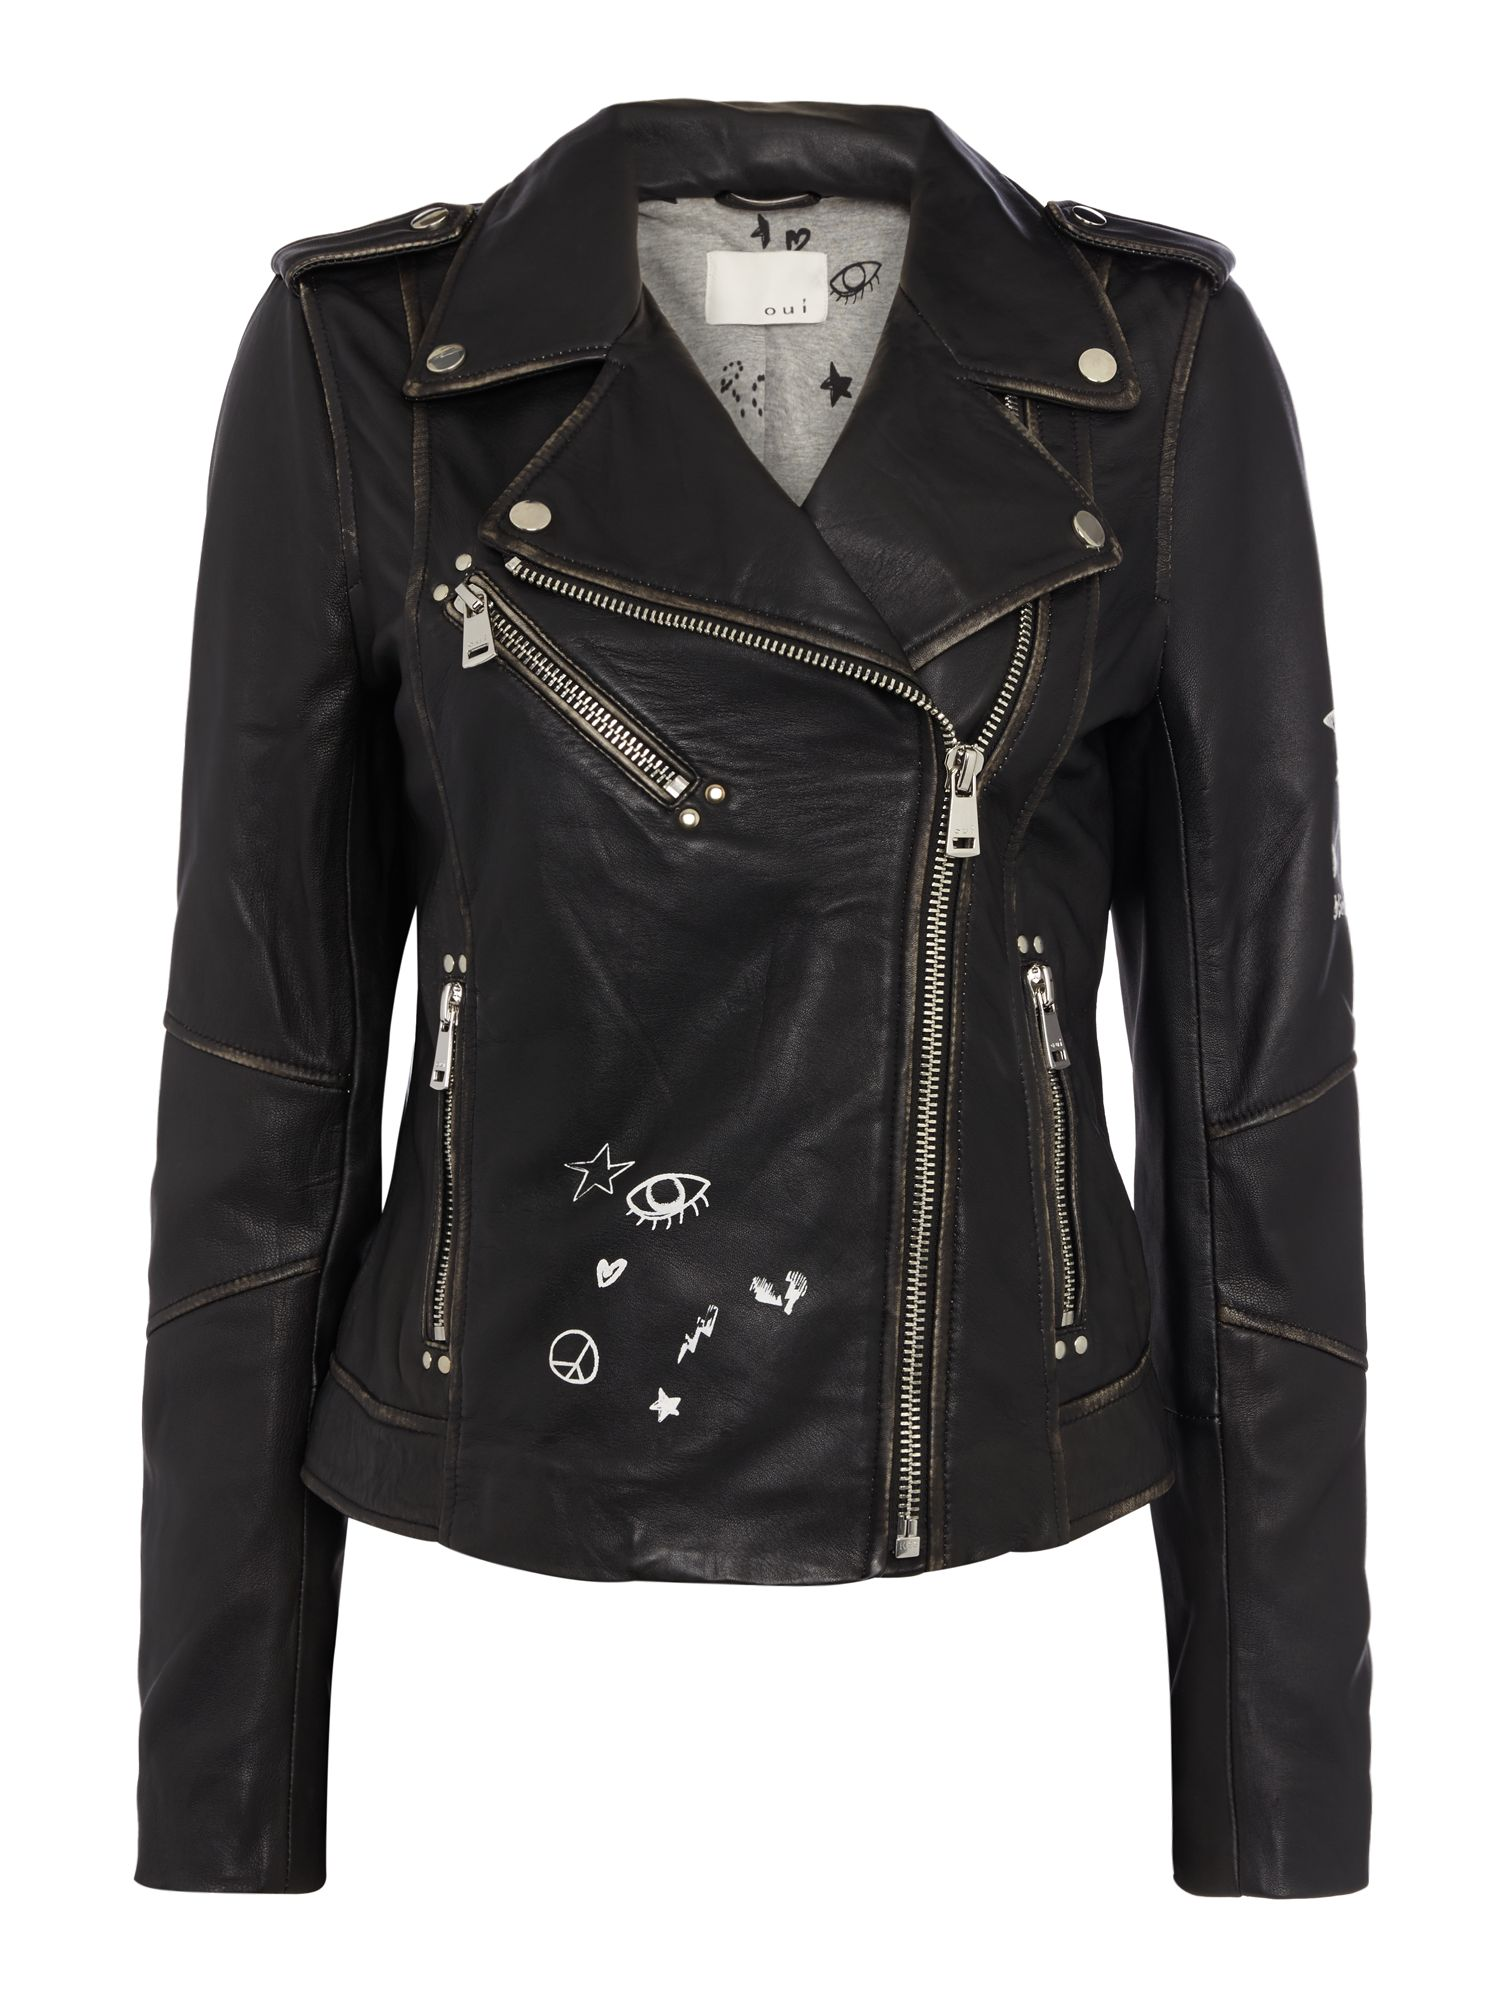 Oui Rock n roll printed leather jacket, Black